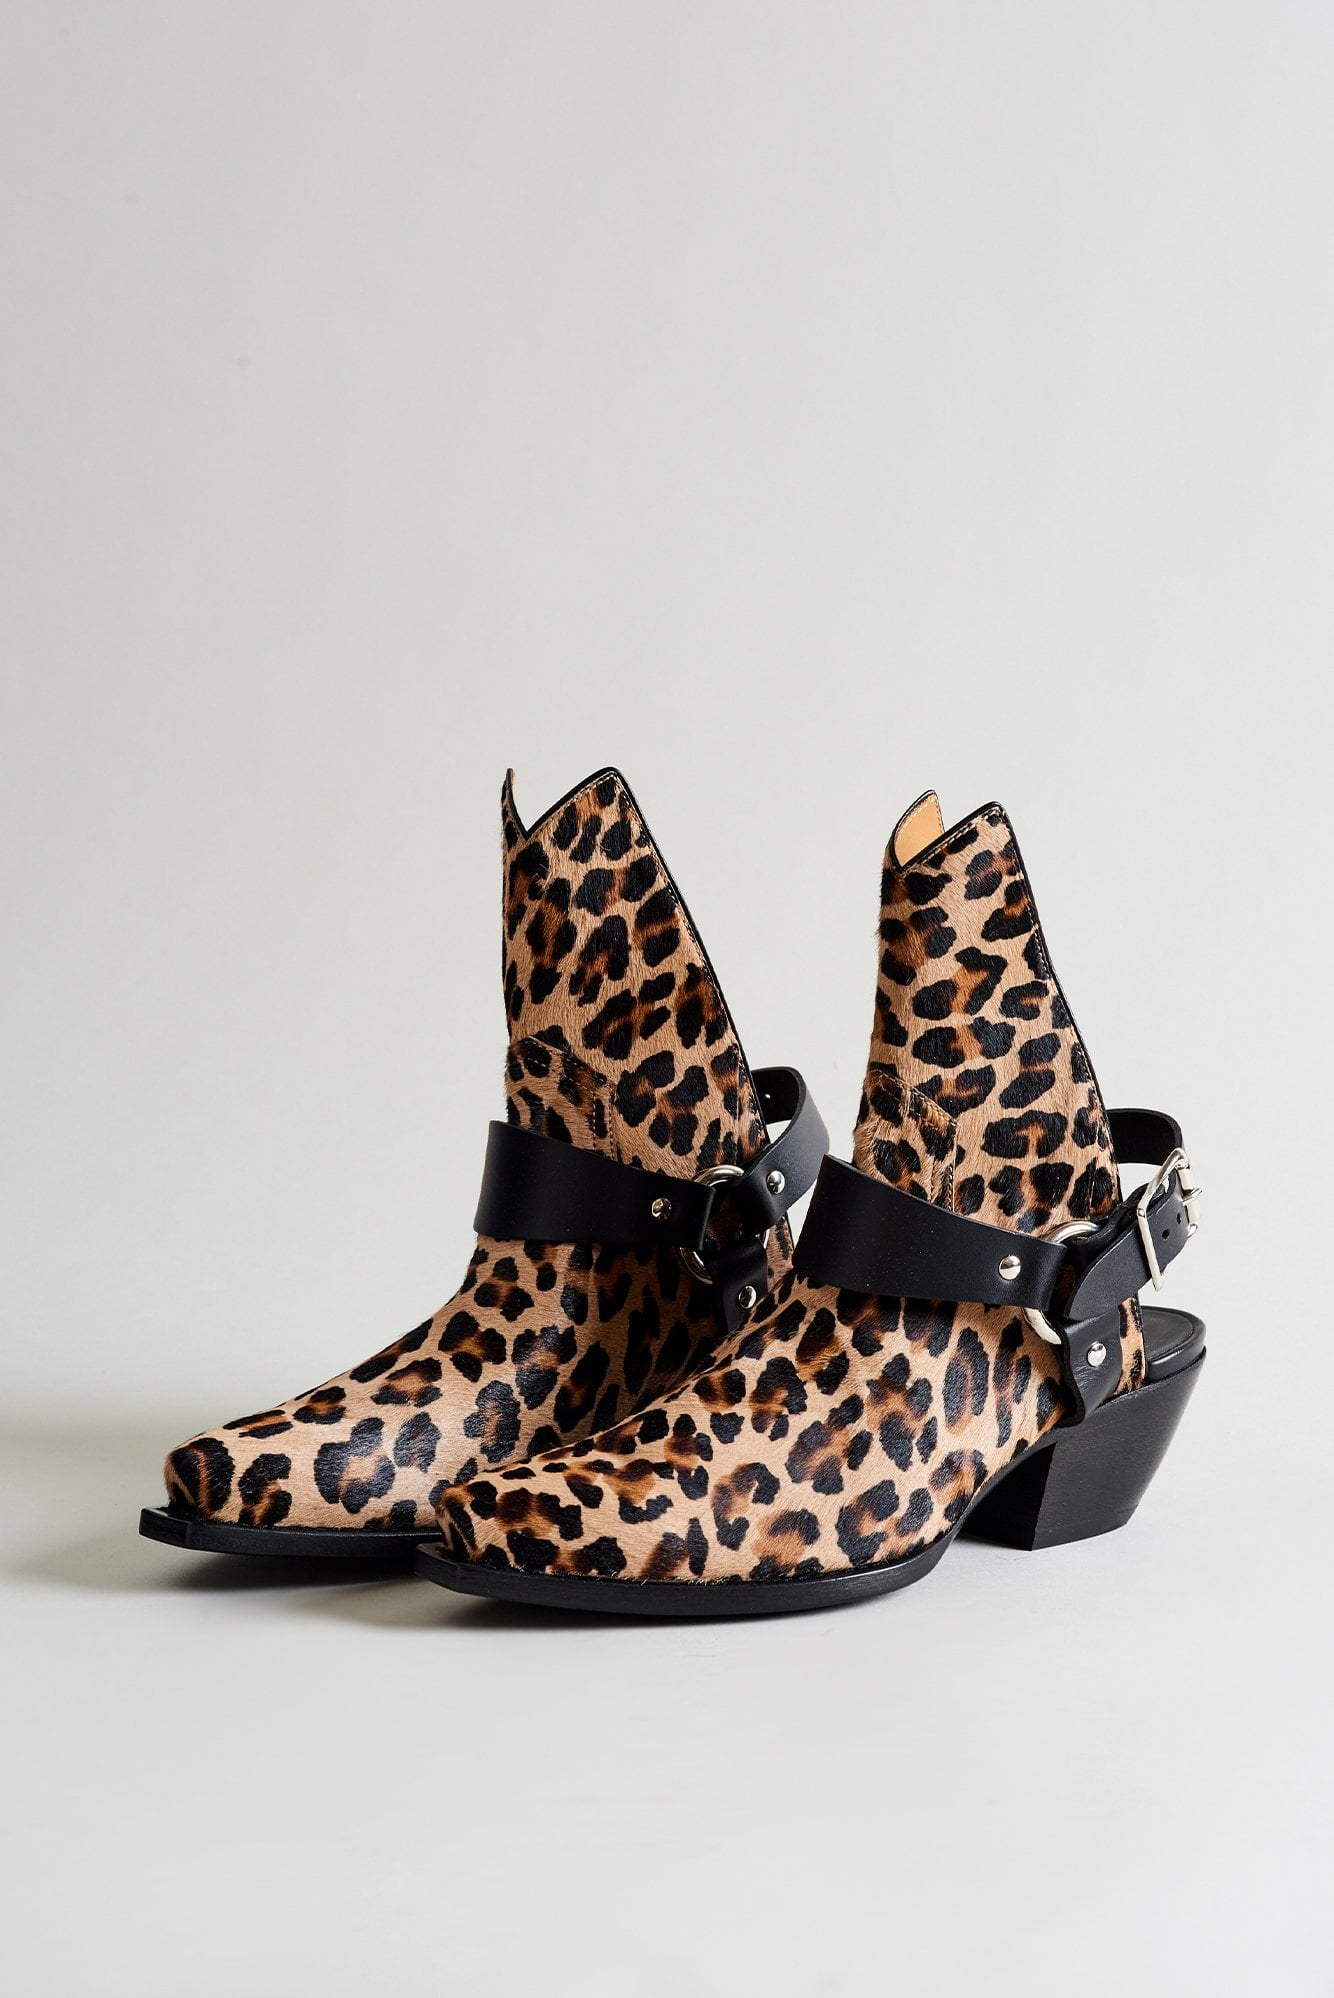 Half Ankle Cowboy Boot with Harness– Leopard